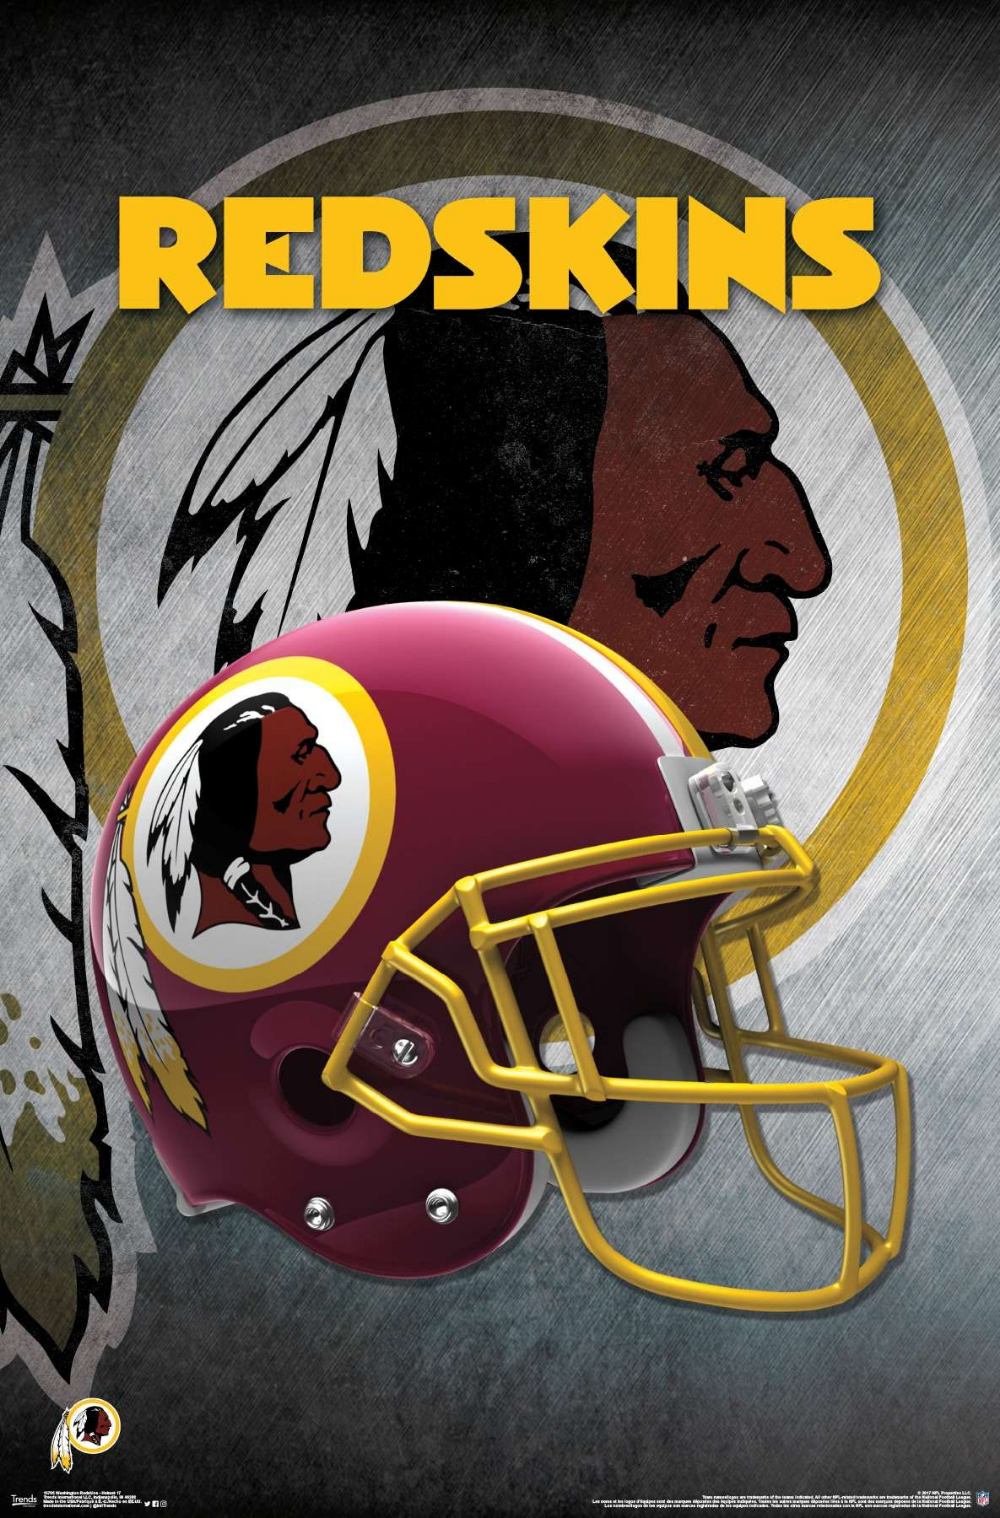 Nfl Washington Redskins Helmet Redskins Helmet Nfl Football